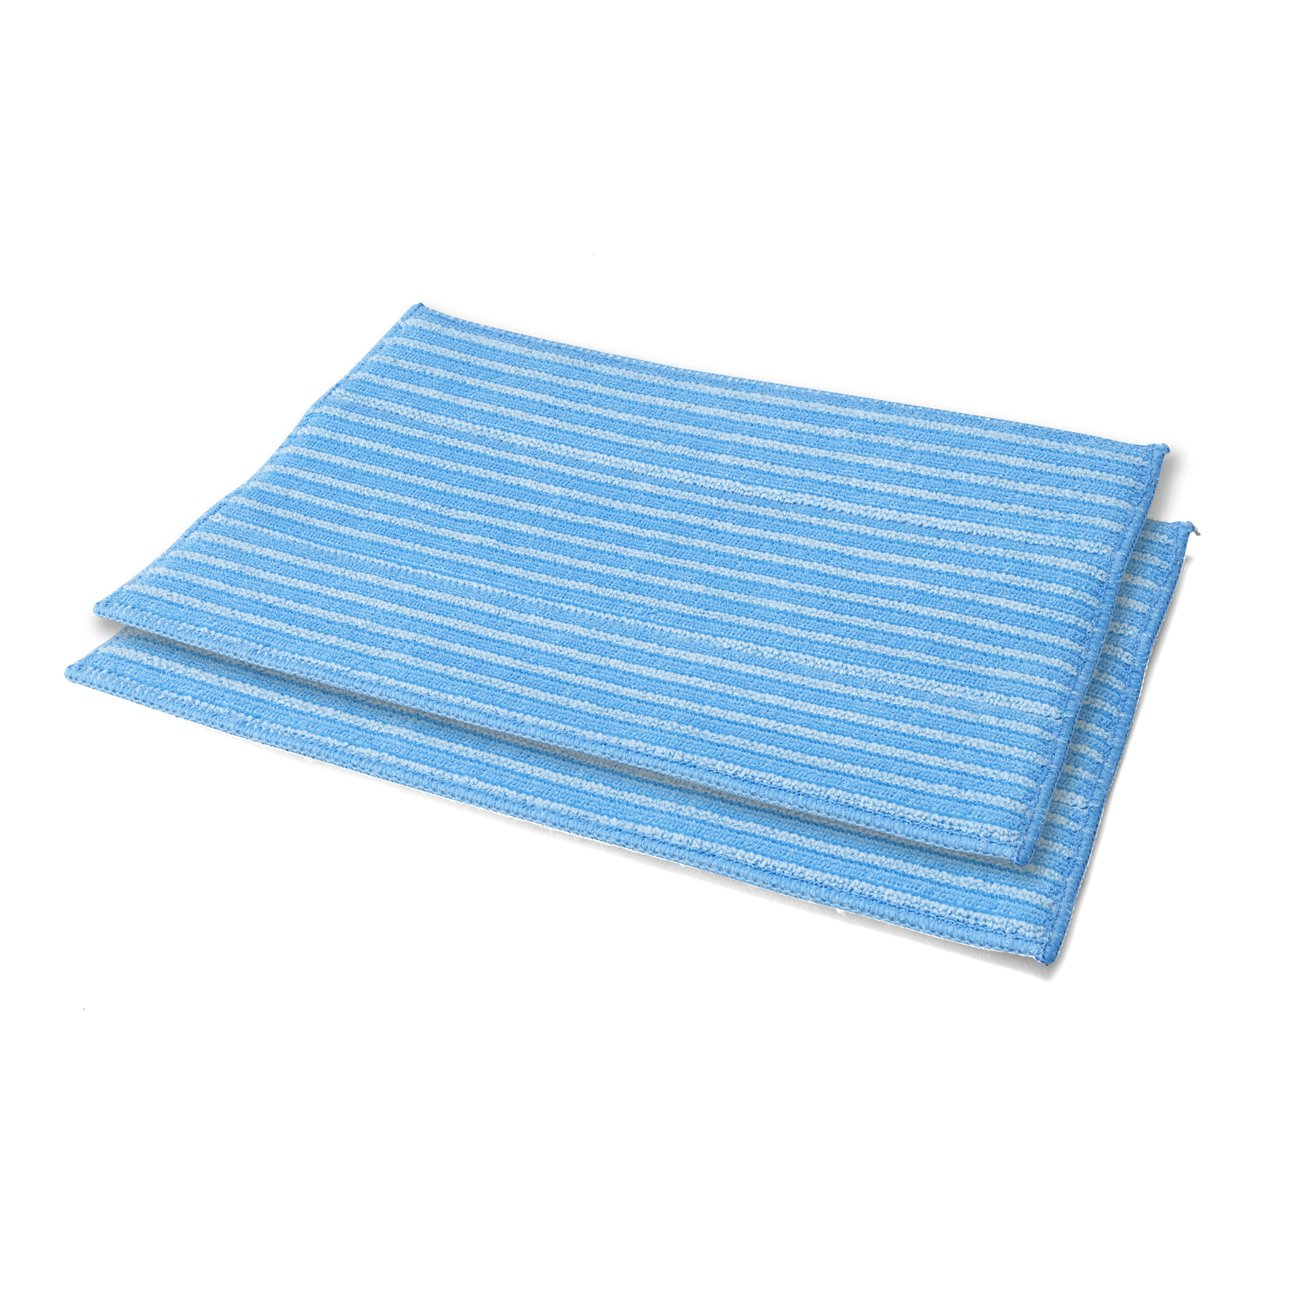 HAAN RMF 2X Ultra Clean Pads, Microfiber Steam Cleaning